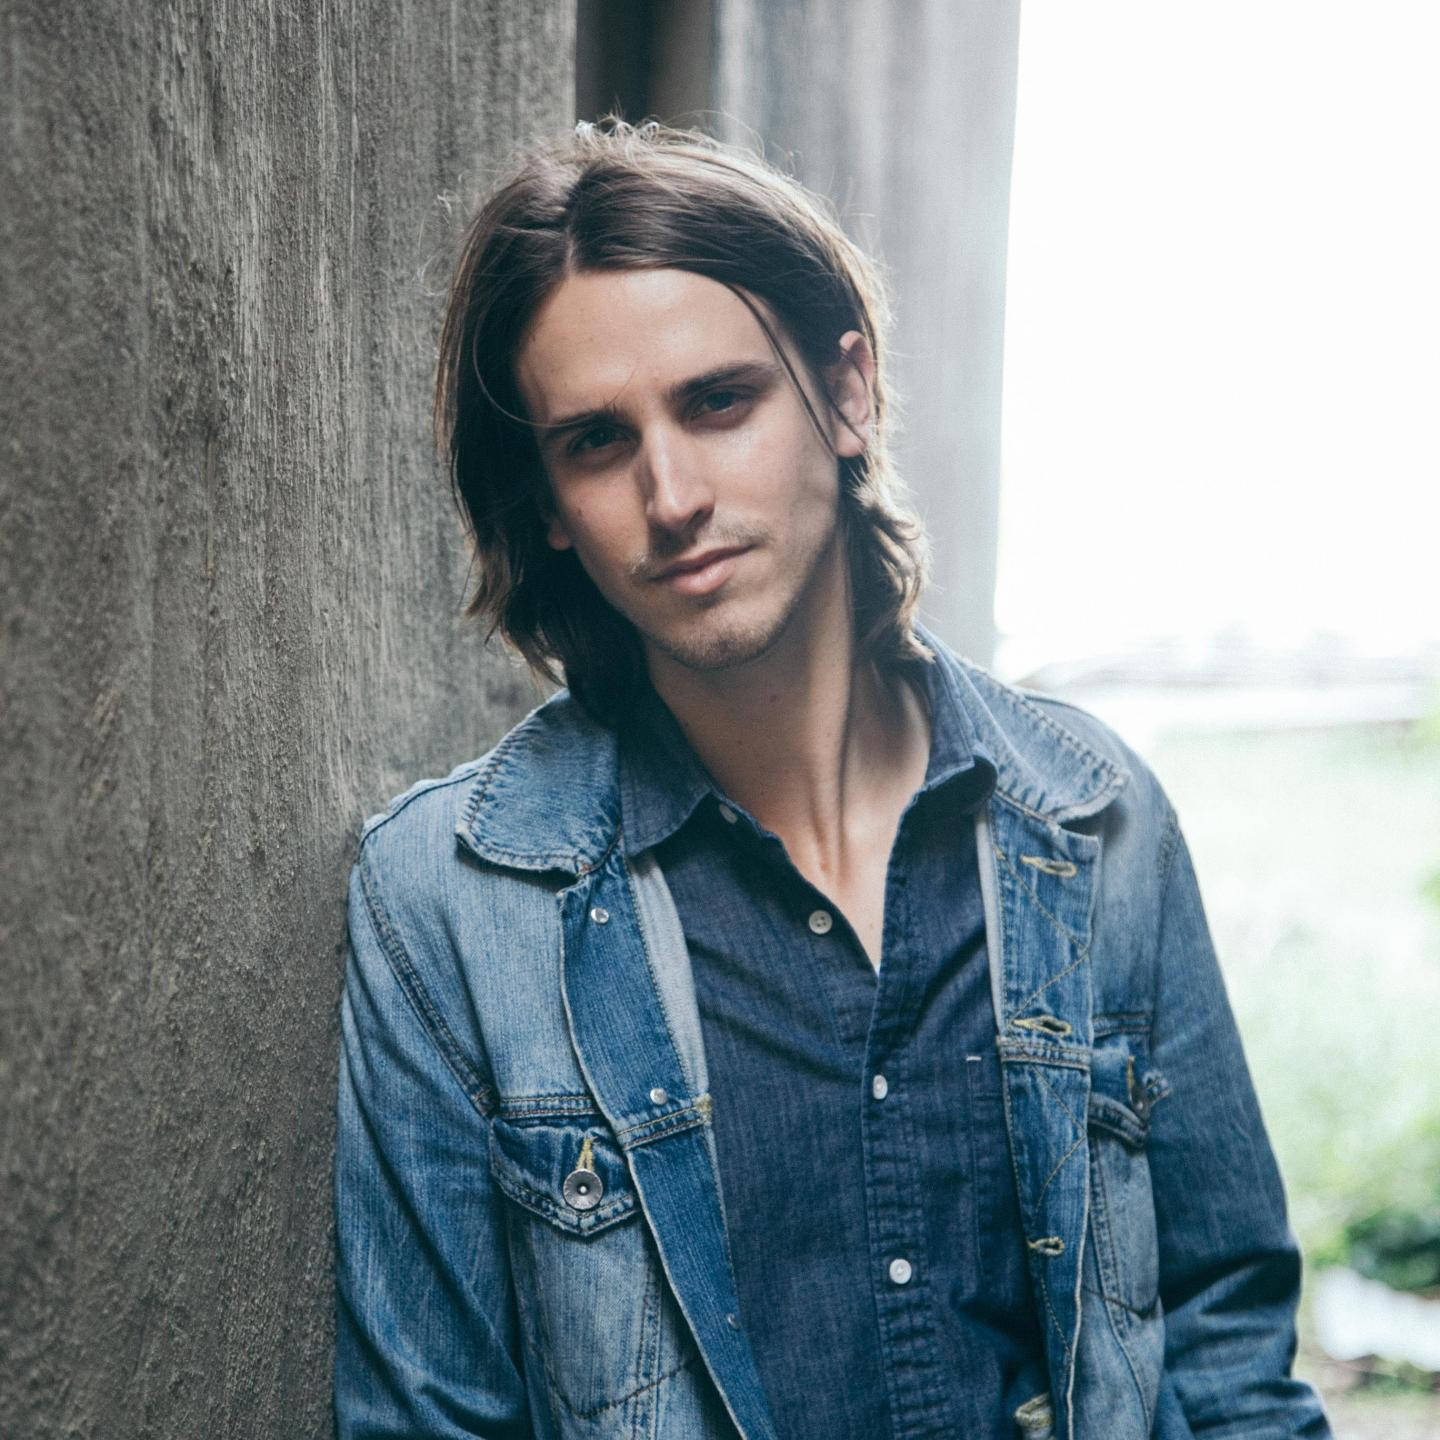 Troy Cartwright wearing a denim button down under a denim jacket leaning up against a wall